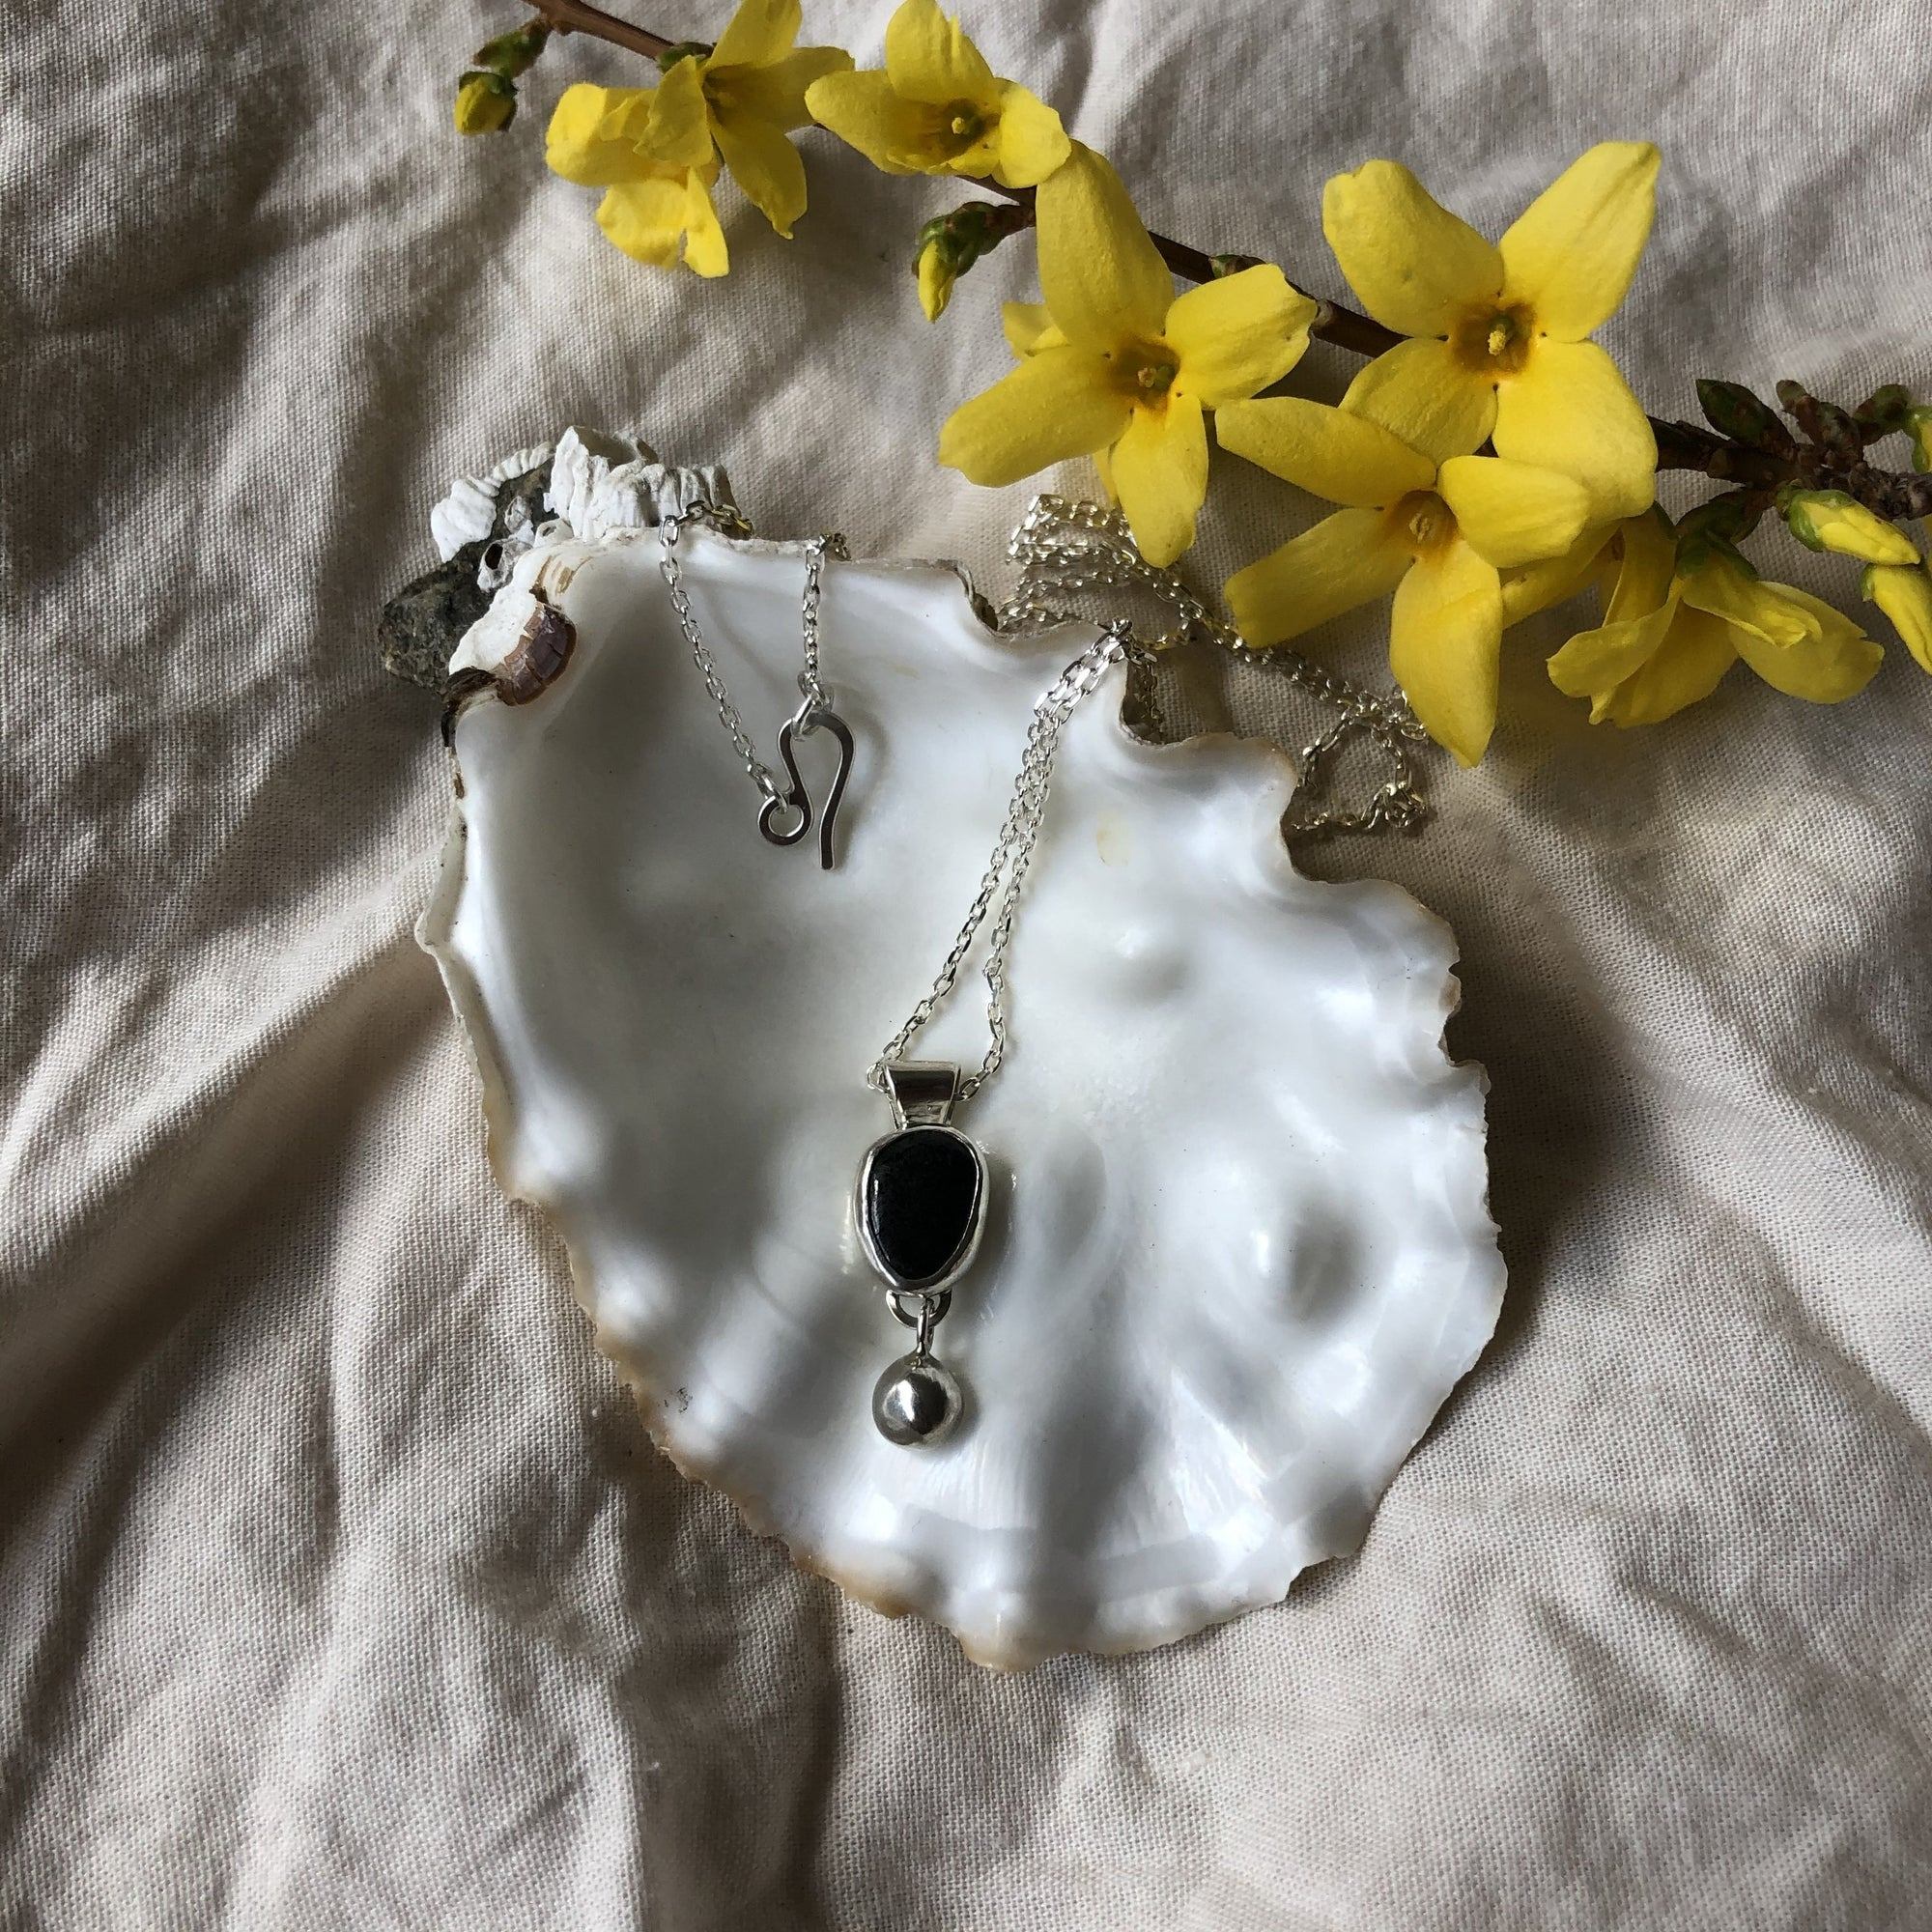 Mellow Moon Jewelry: Local Beach Onyx Stone Pendant with silver ball